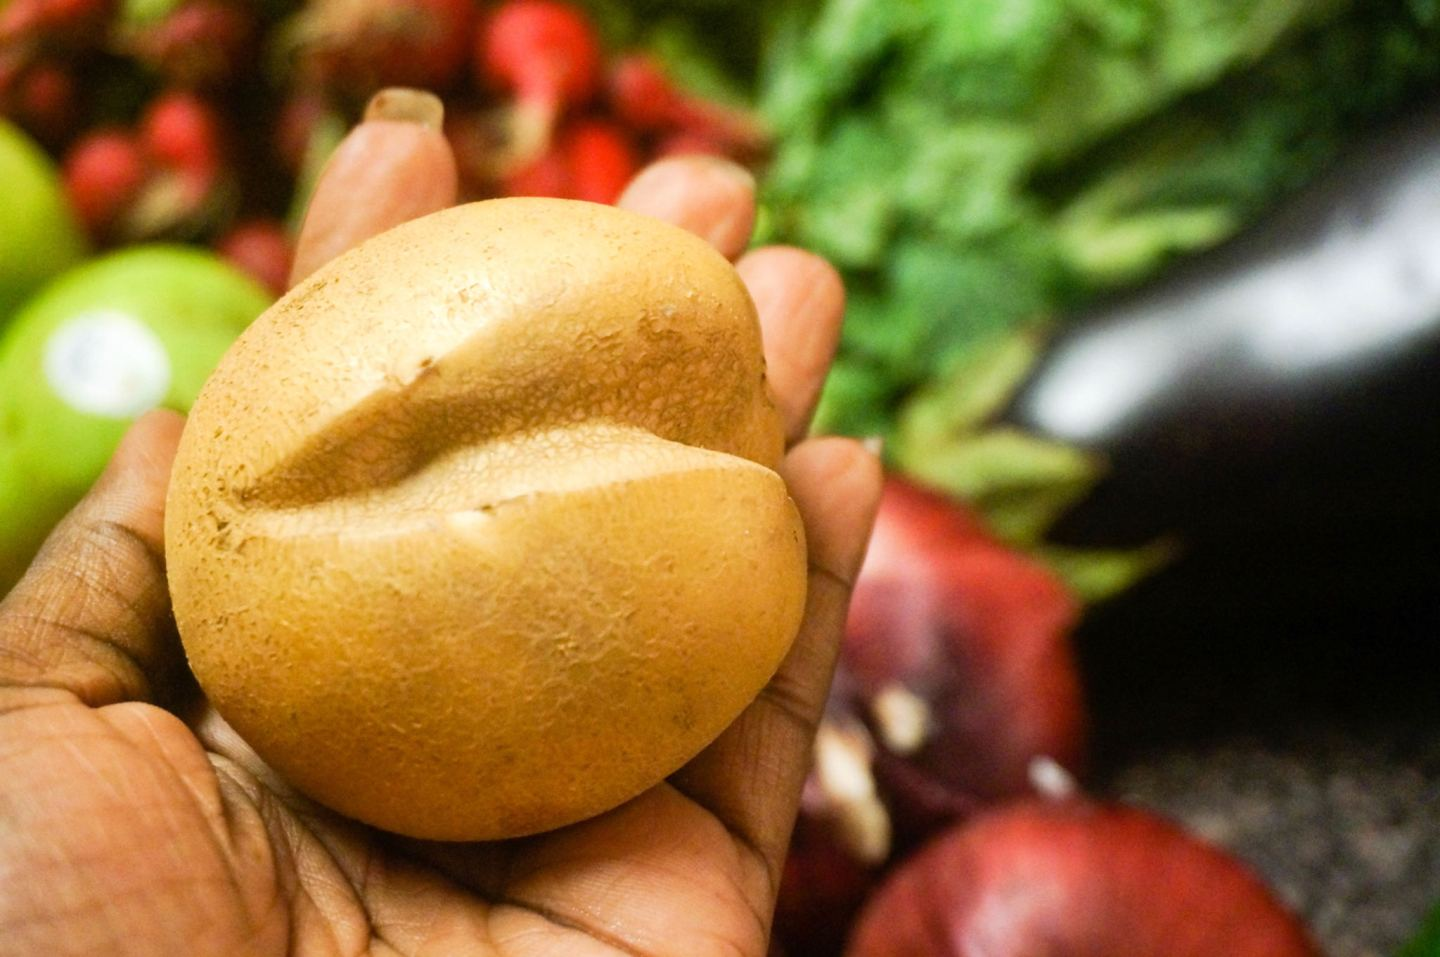 Abnormal potatoes from Misfit Market